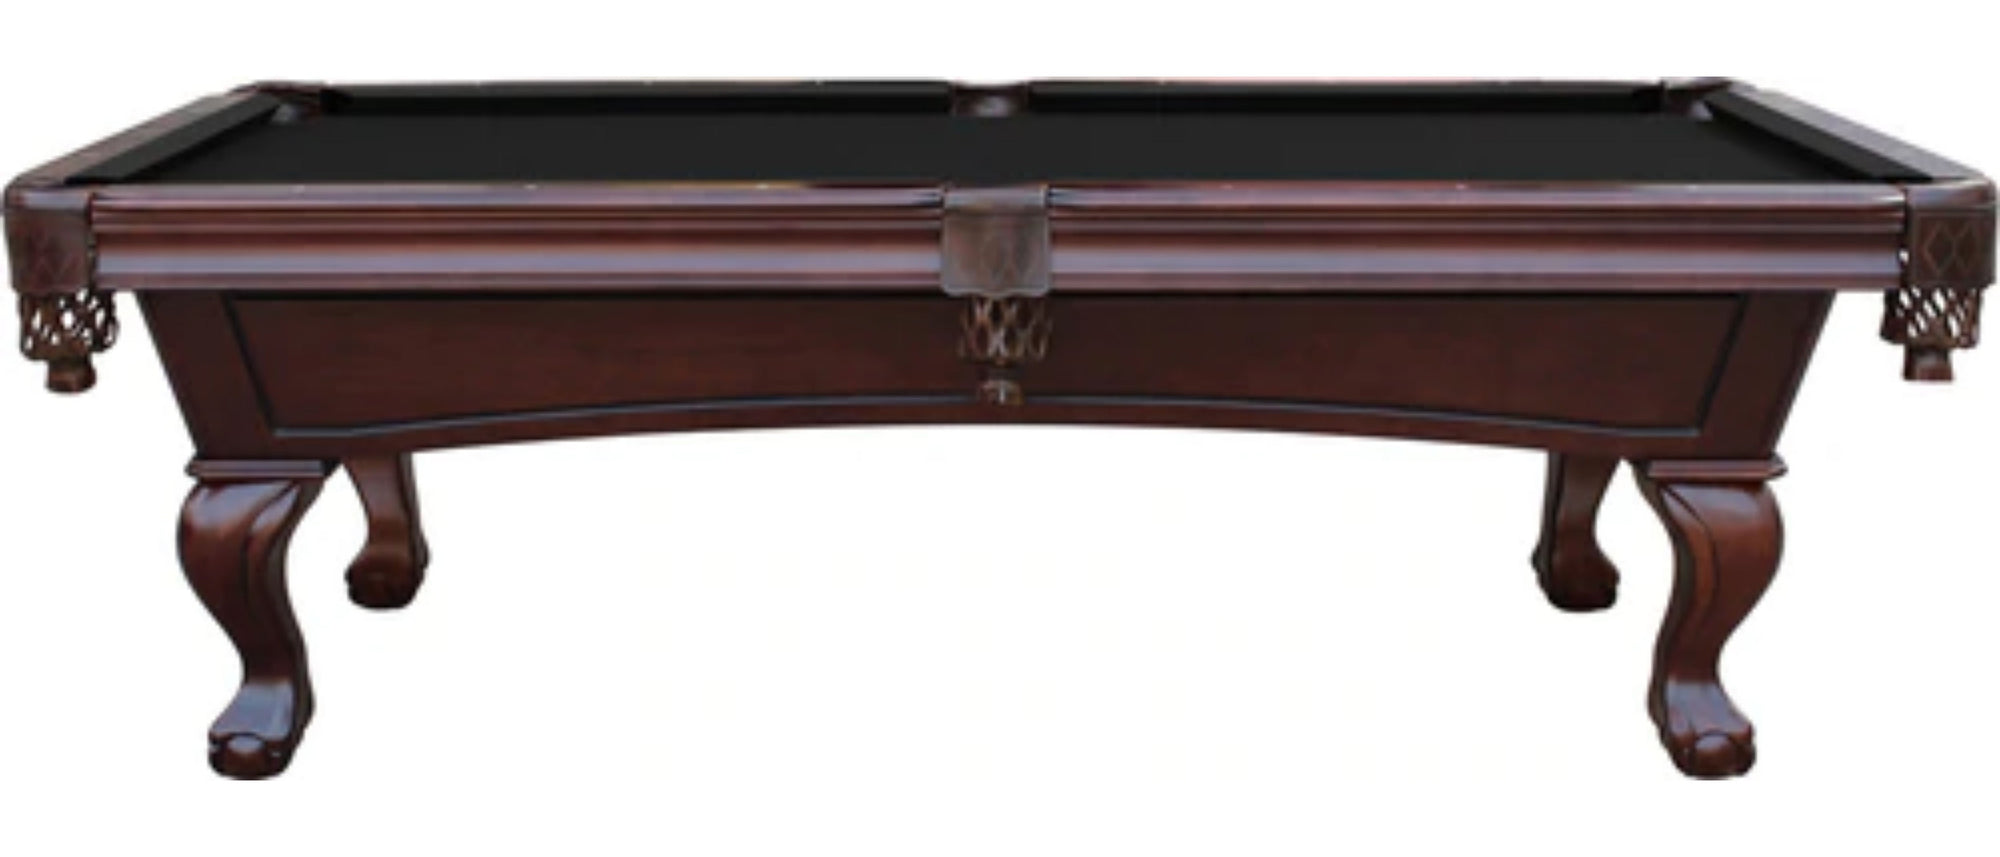 Charles River Slate Pool Table w/ Leather Drop Pockets, Espresso